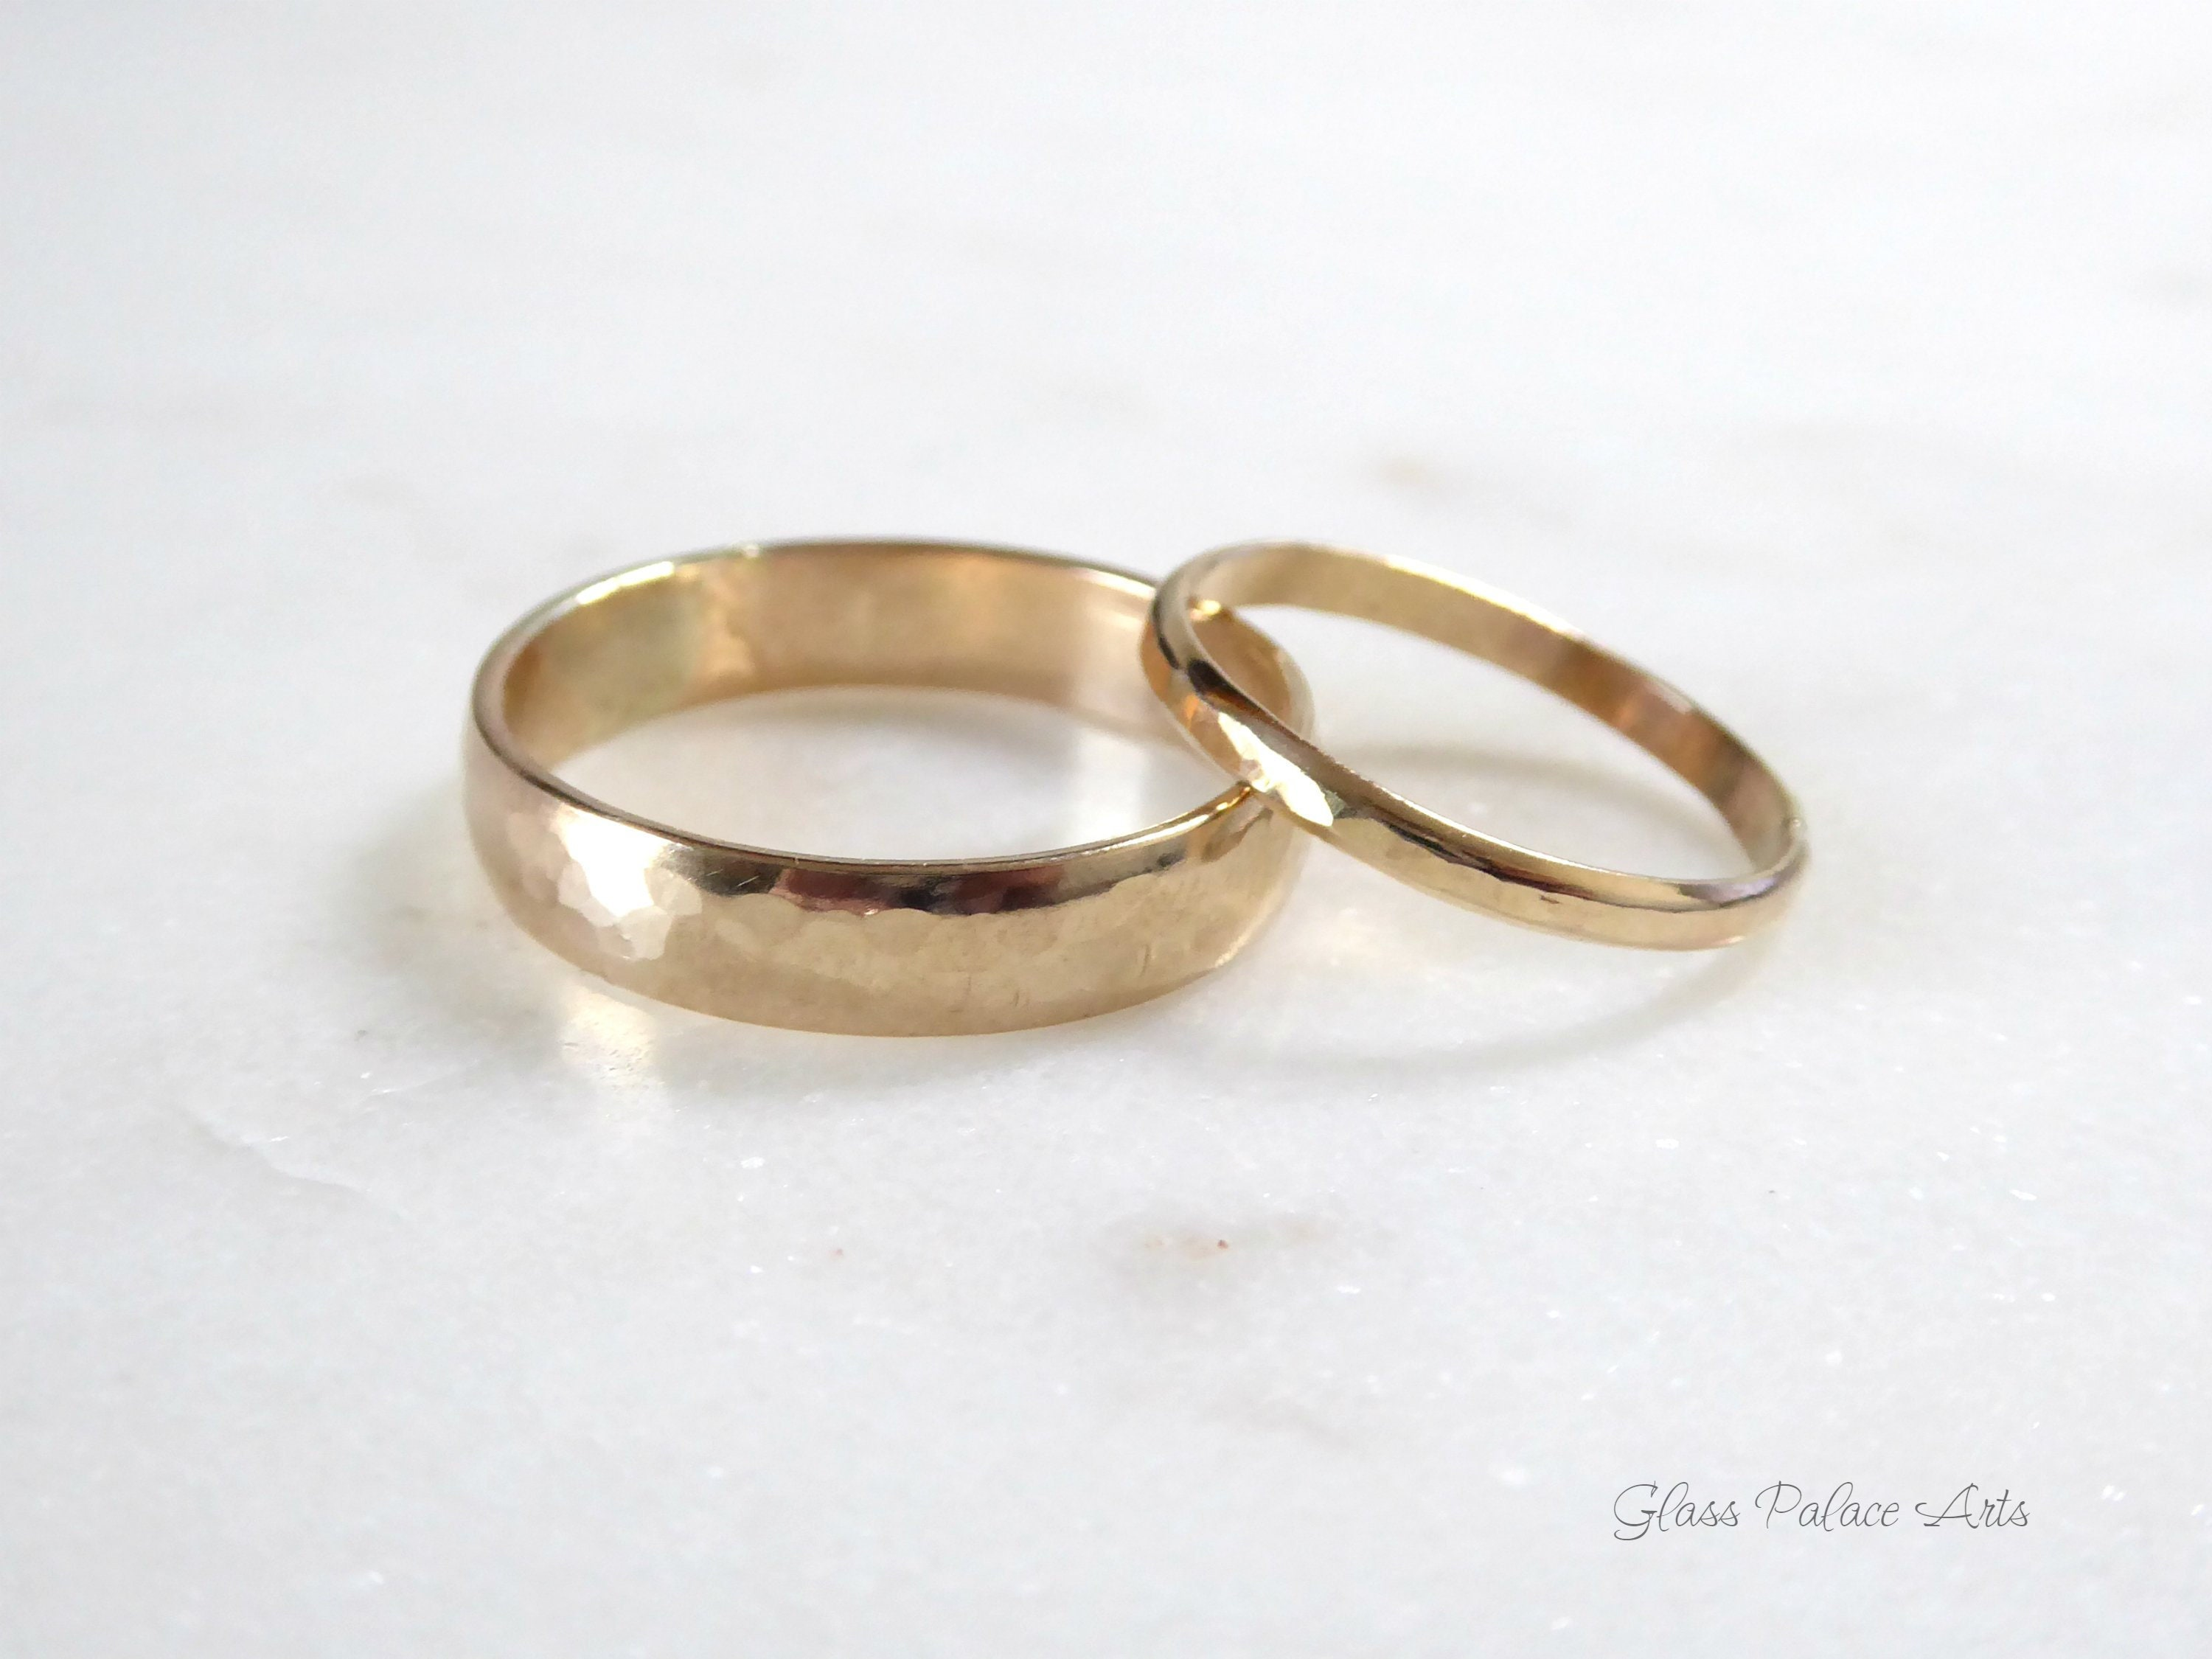 e8e5e872910e7 Couples Ring Set 14k Gold Fill, Promise Rings For Couples Engagement,  Matching Wedding Bands His And Hers, Affordable Hammered Minimalist